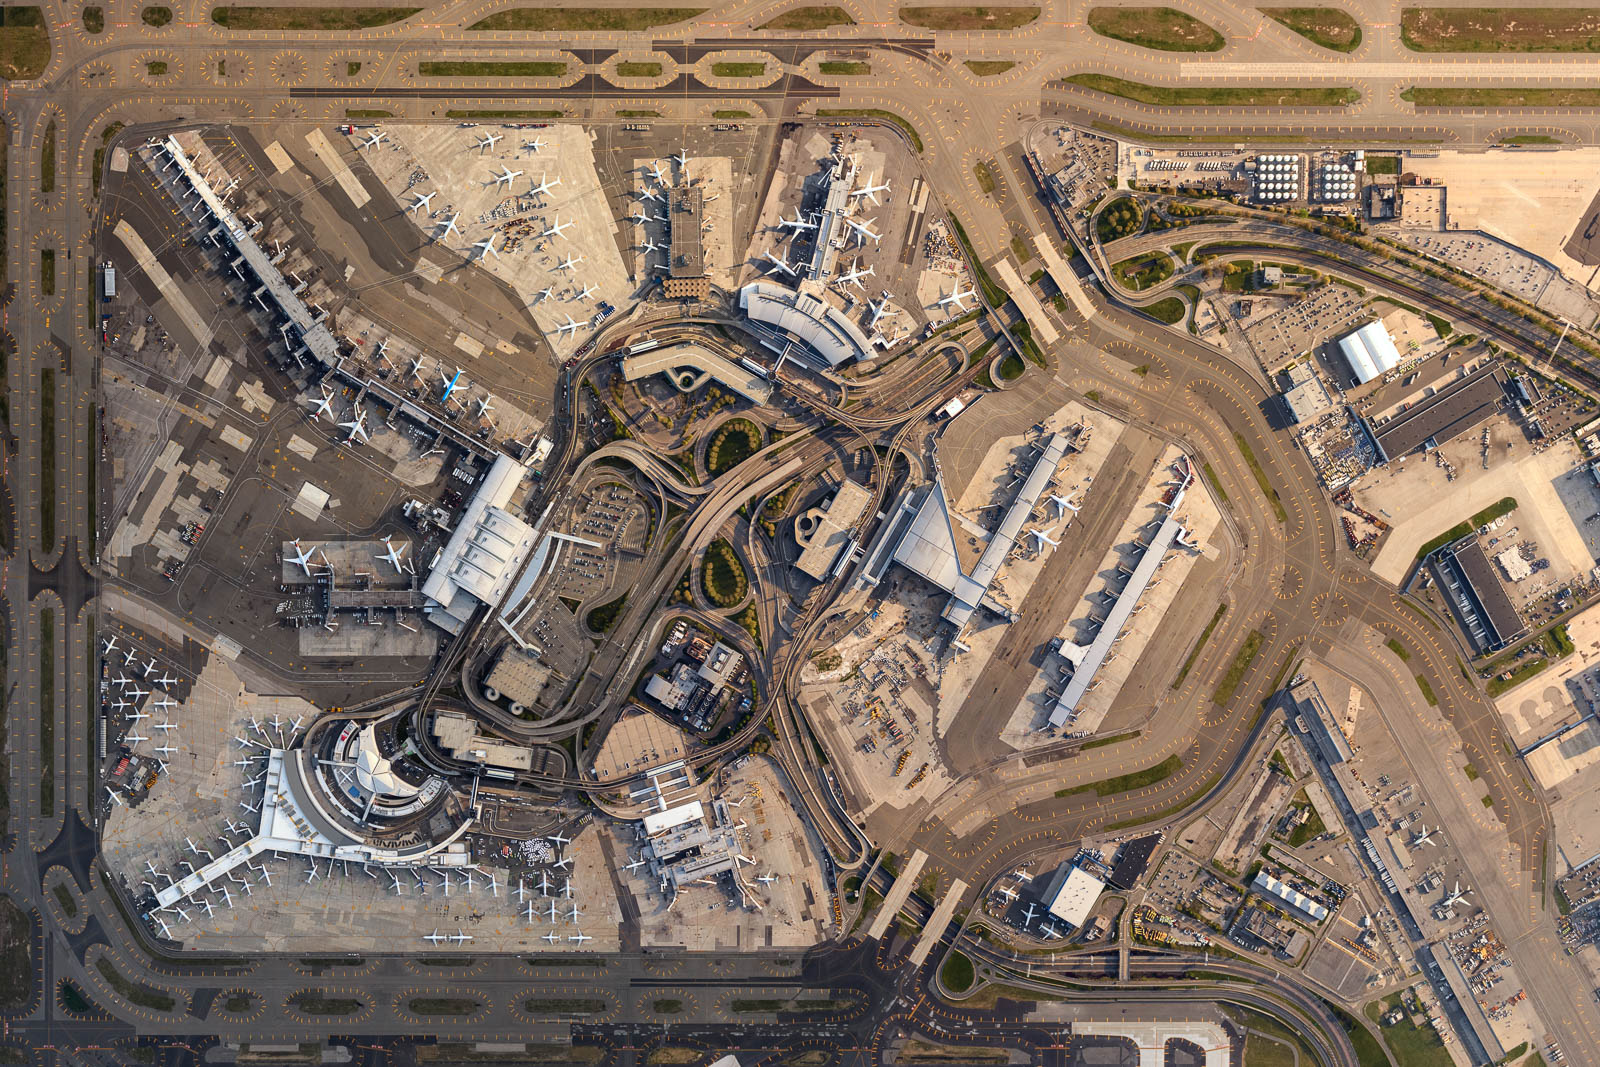 JFK airport during the peak of COVID-19 crisis (May 2020)